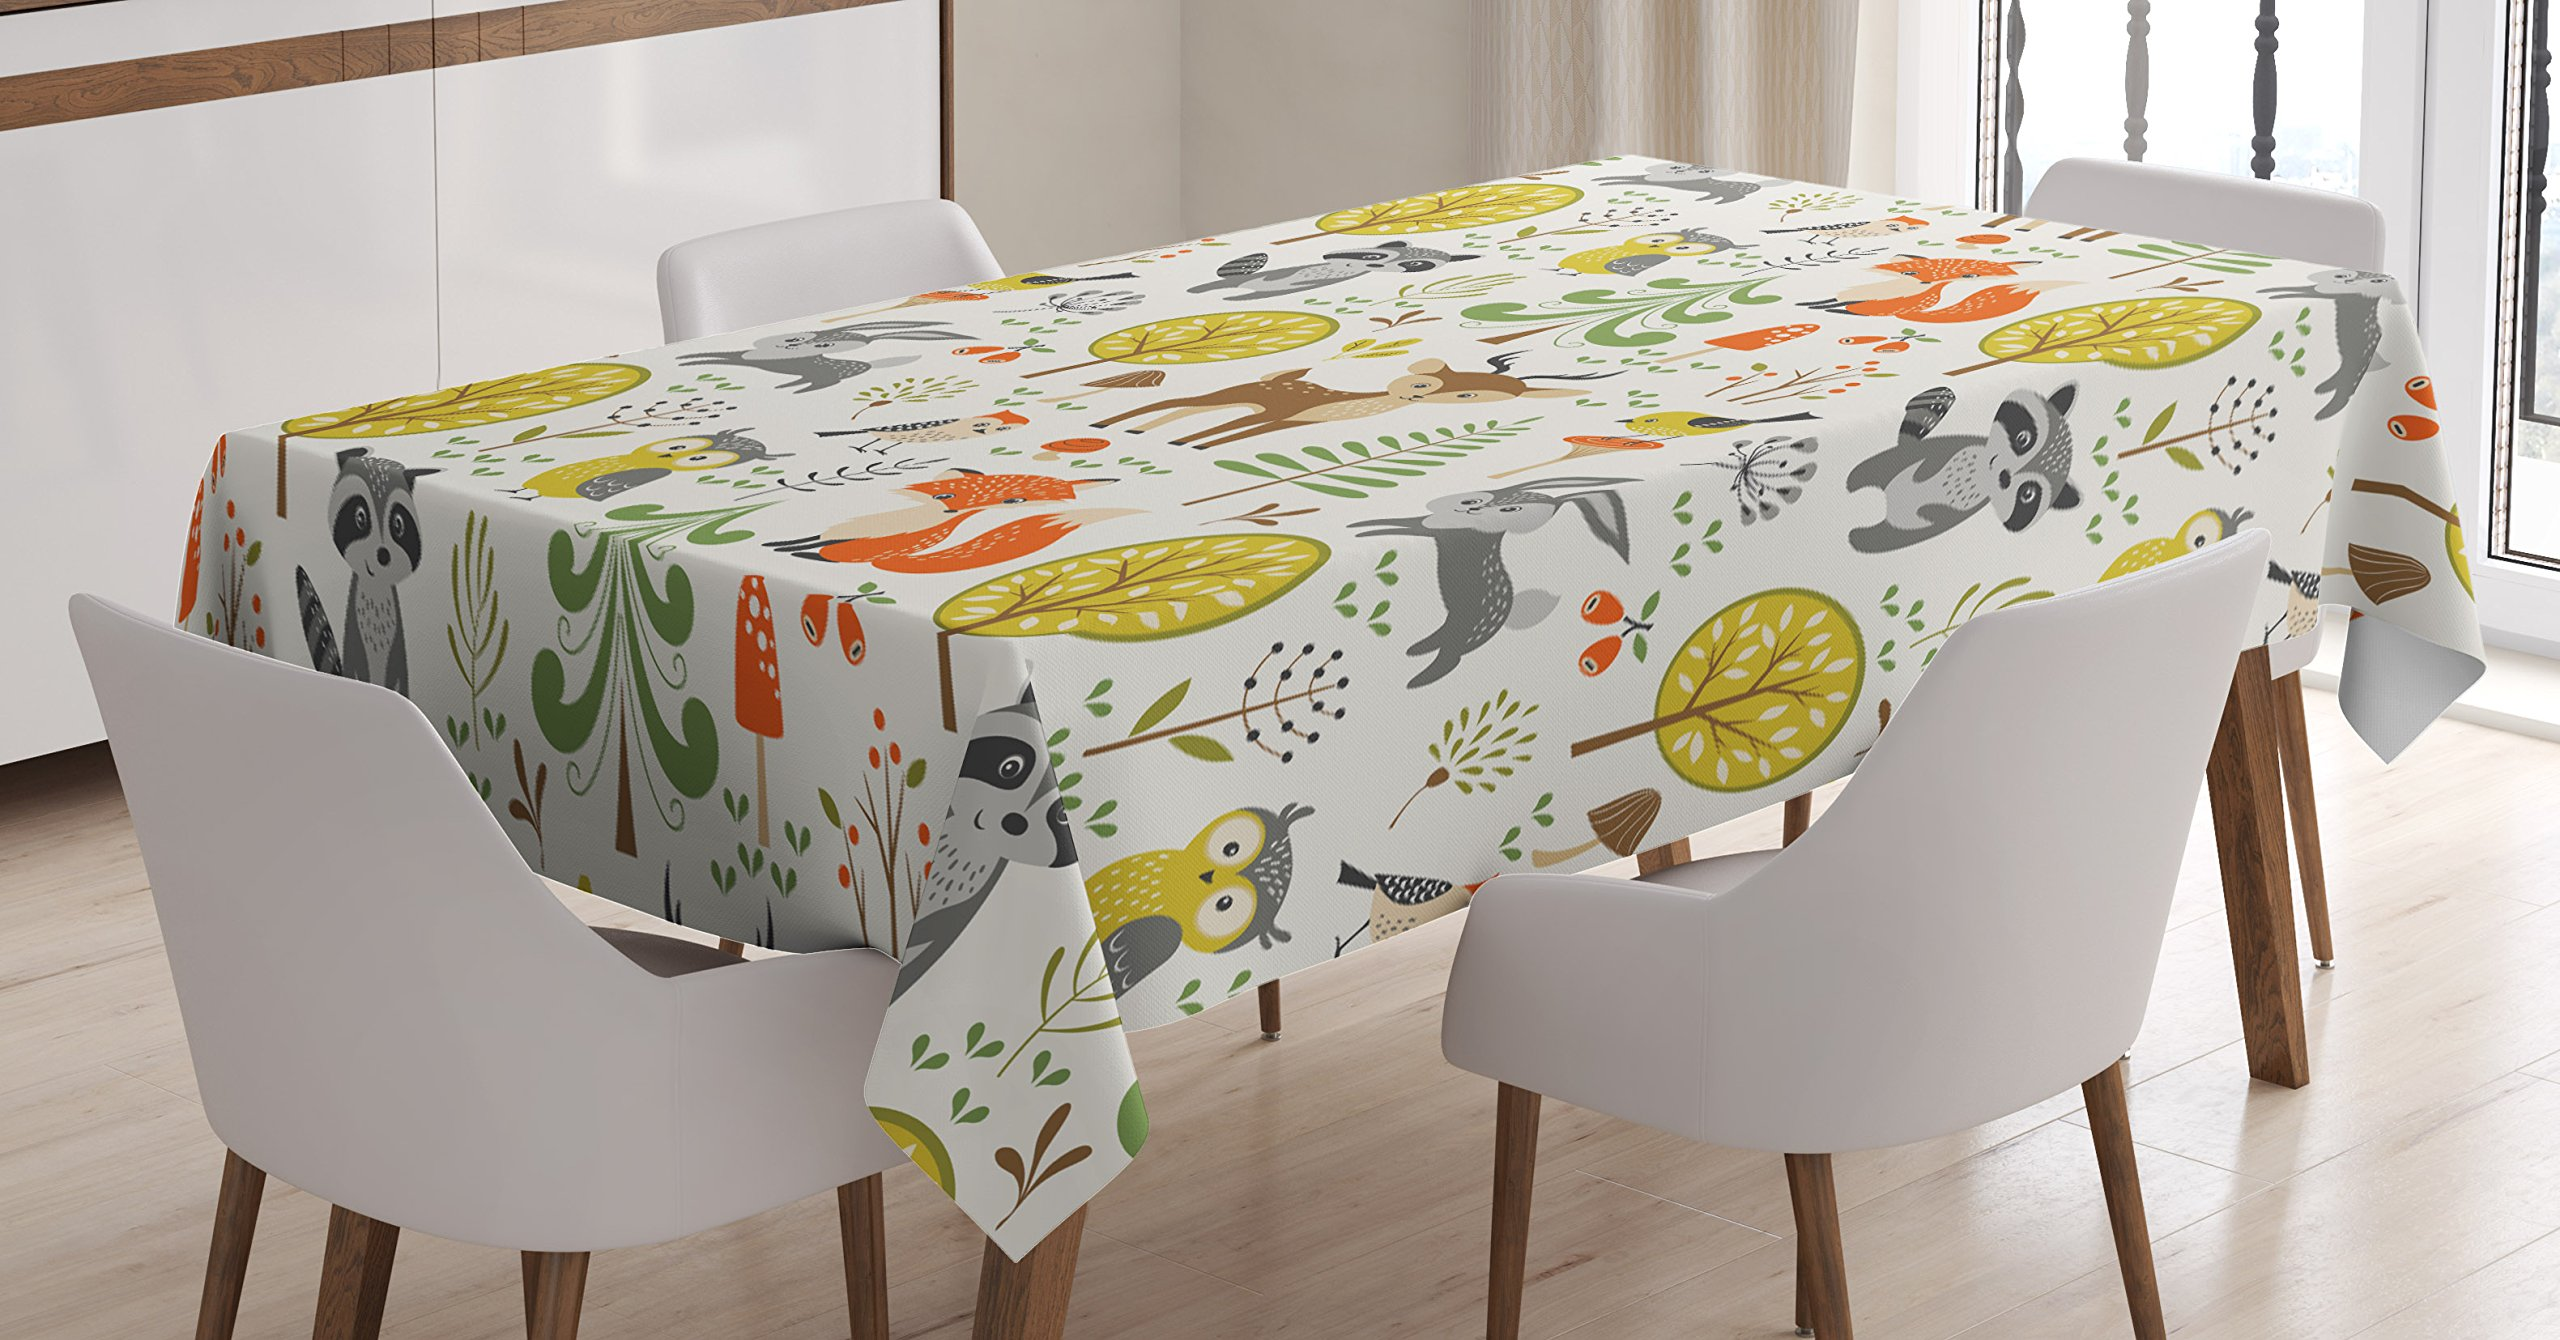 Ambesonne Kids Decor Tablecloth by, Woodland Forest Animals Trees Birds Owls Fox Bunny Deer Raccoon Mushroom Home and Party Decorations, Dining Room Kitchen Rectangular Table Cover, 60 X 84 Inches,